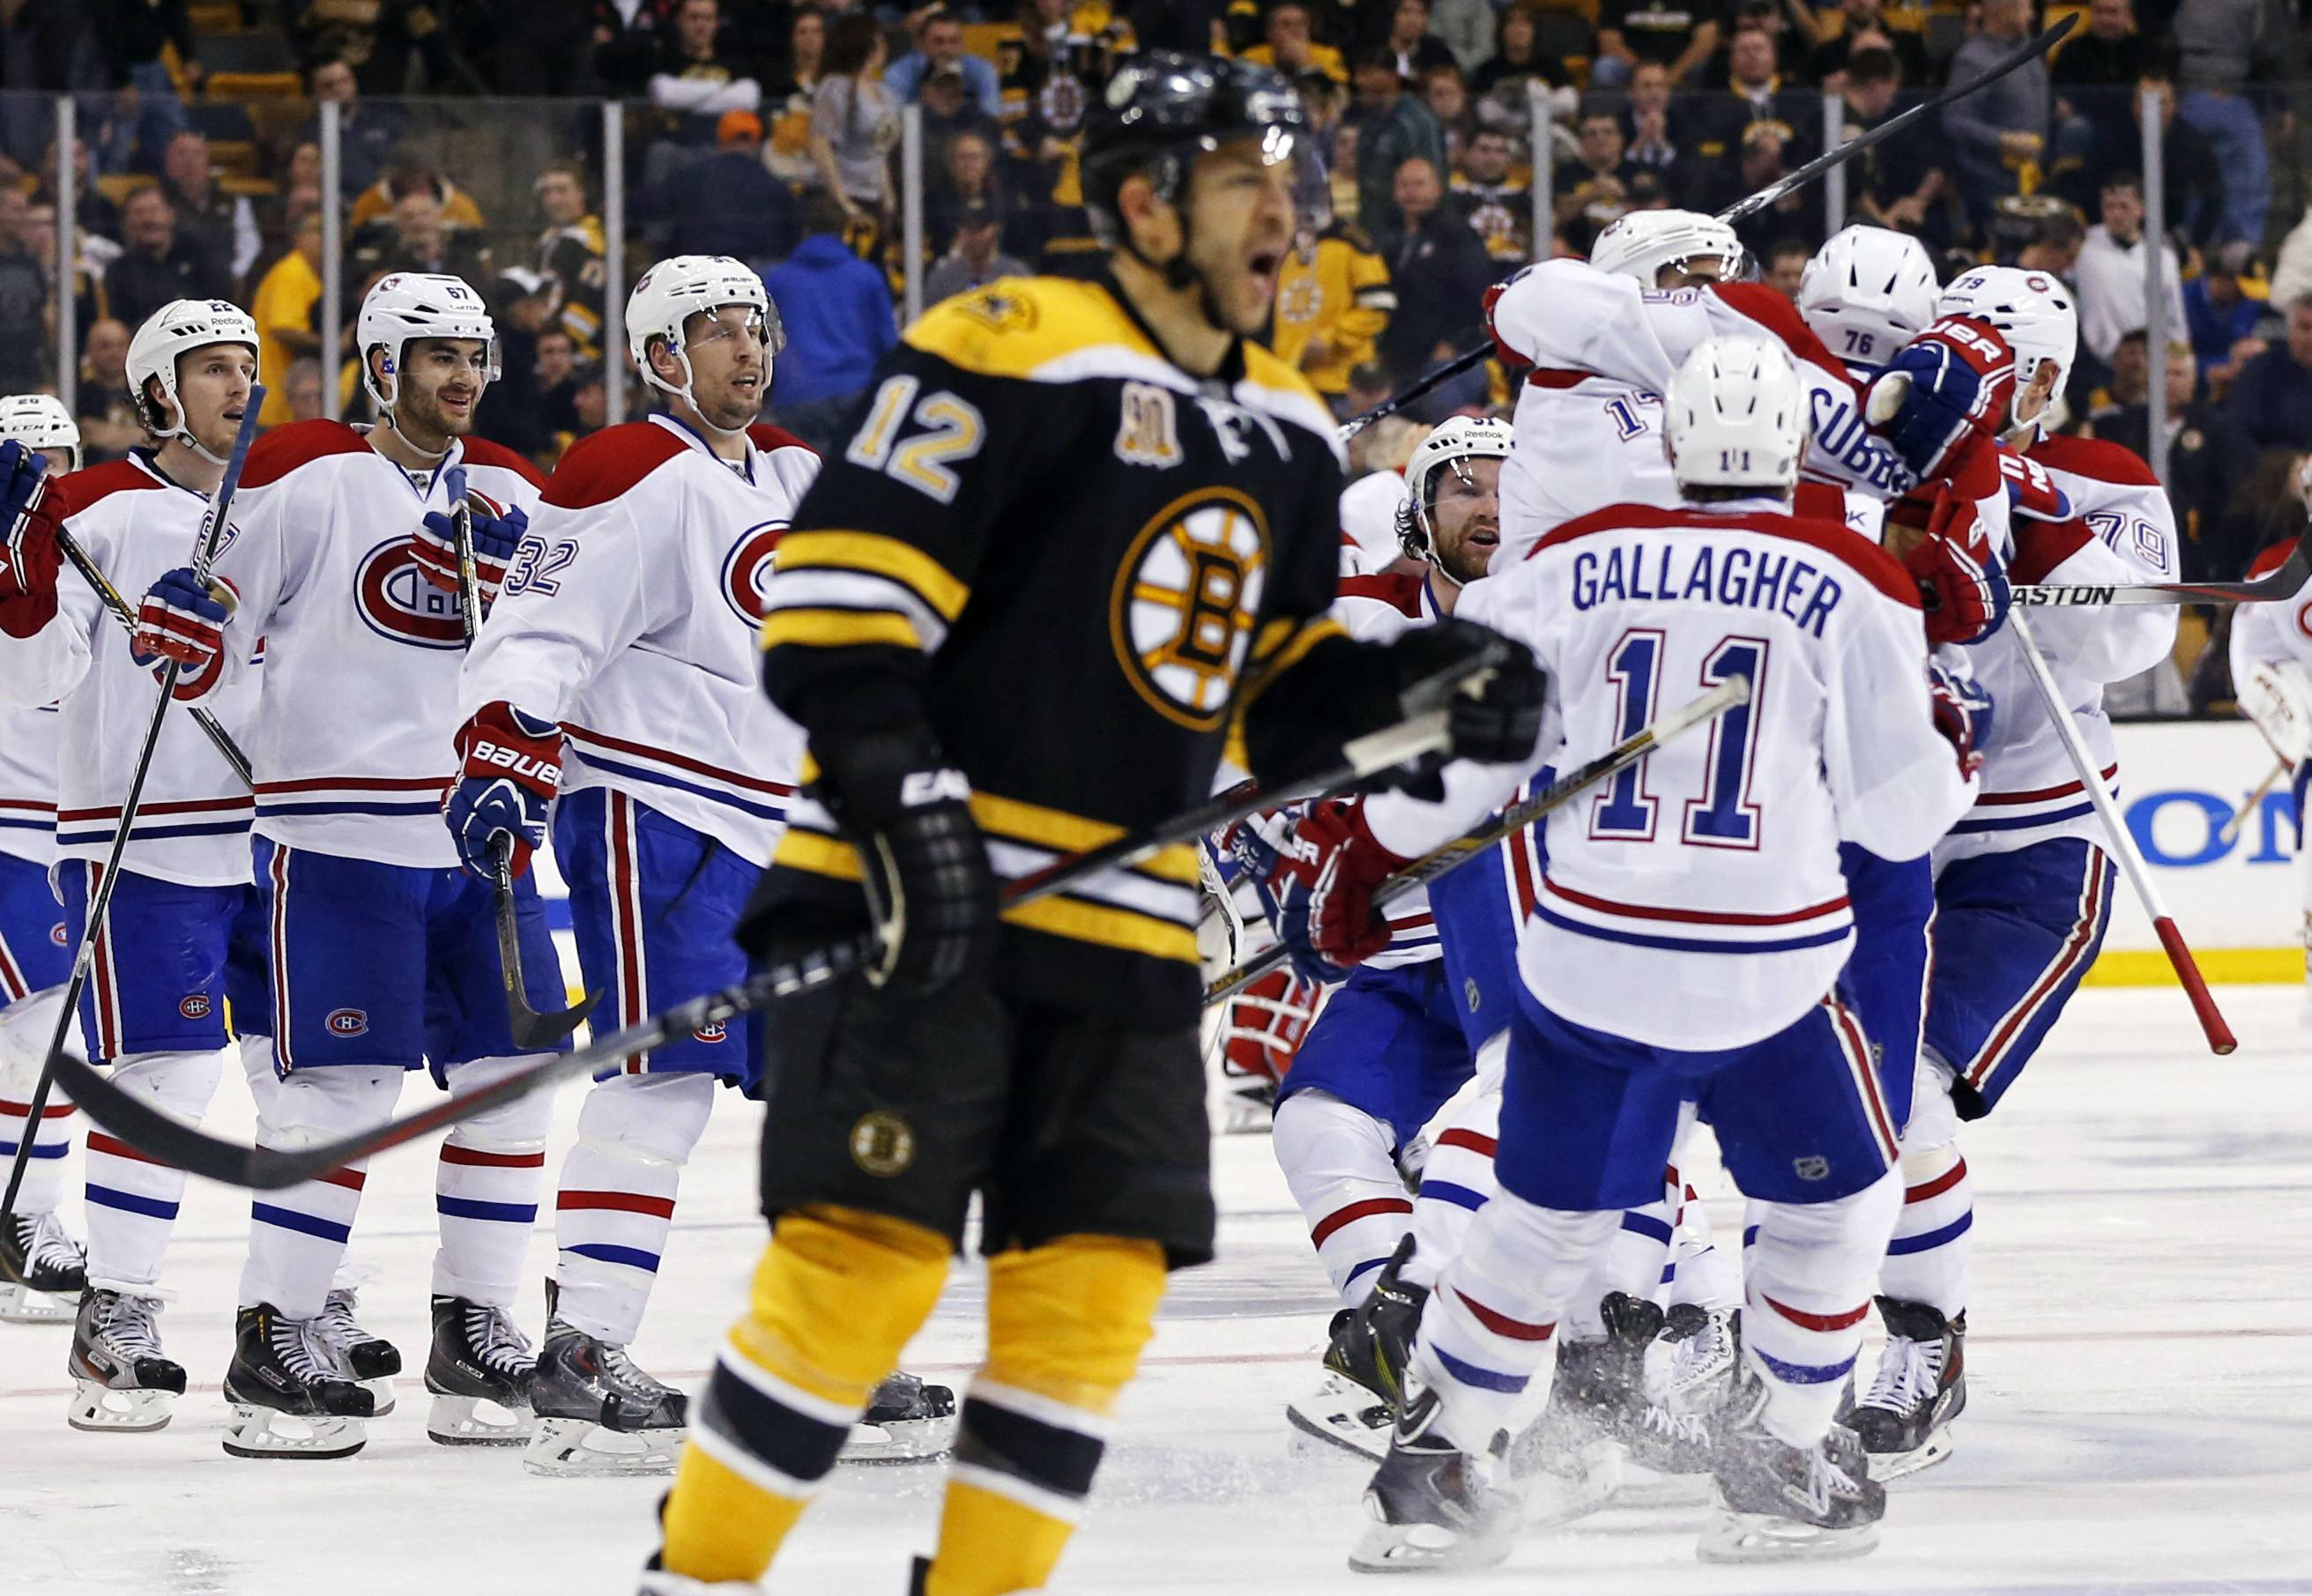 Montreal Canadiens teammates jump on P.K. Subban, right, after his game-winning goal in the second overtime period as Boston Bruins right wing Jarome Iginla (12) skates away in Game 1 of an NHL hockey second-round playoff series in Boston, Thursday, May 1, 2014.